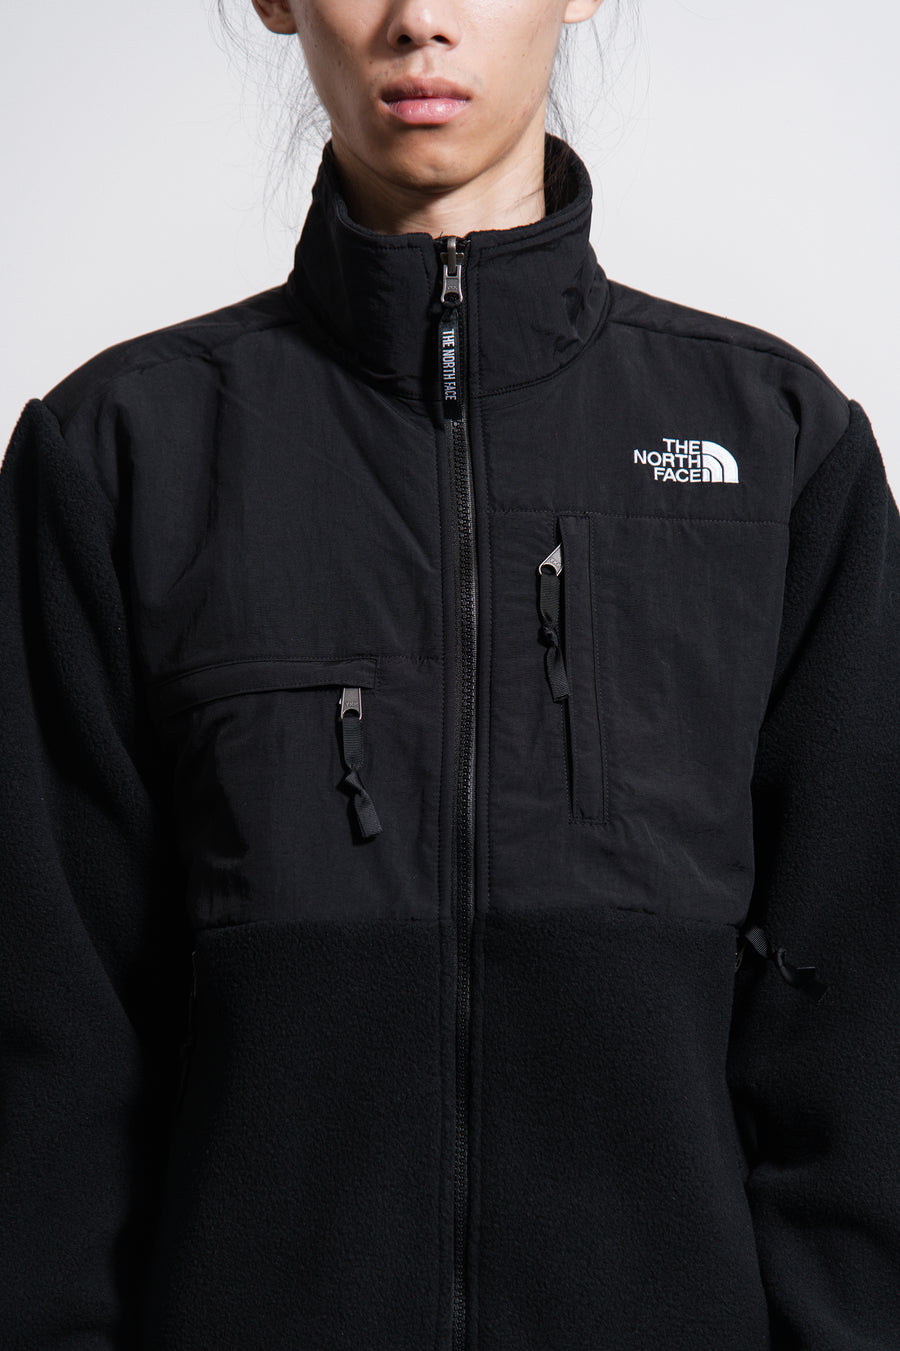 1995 Retro Denali Jacket Black